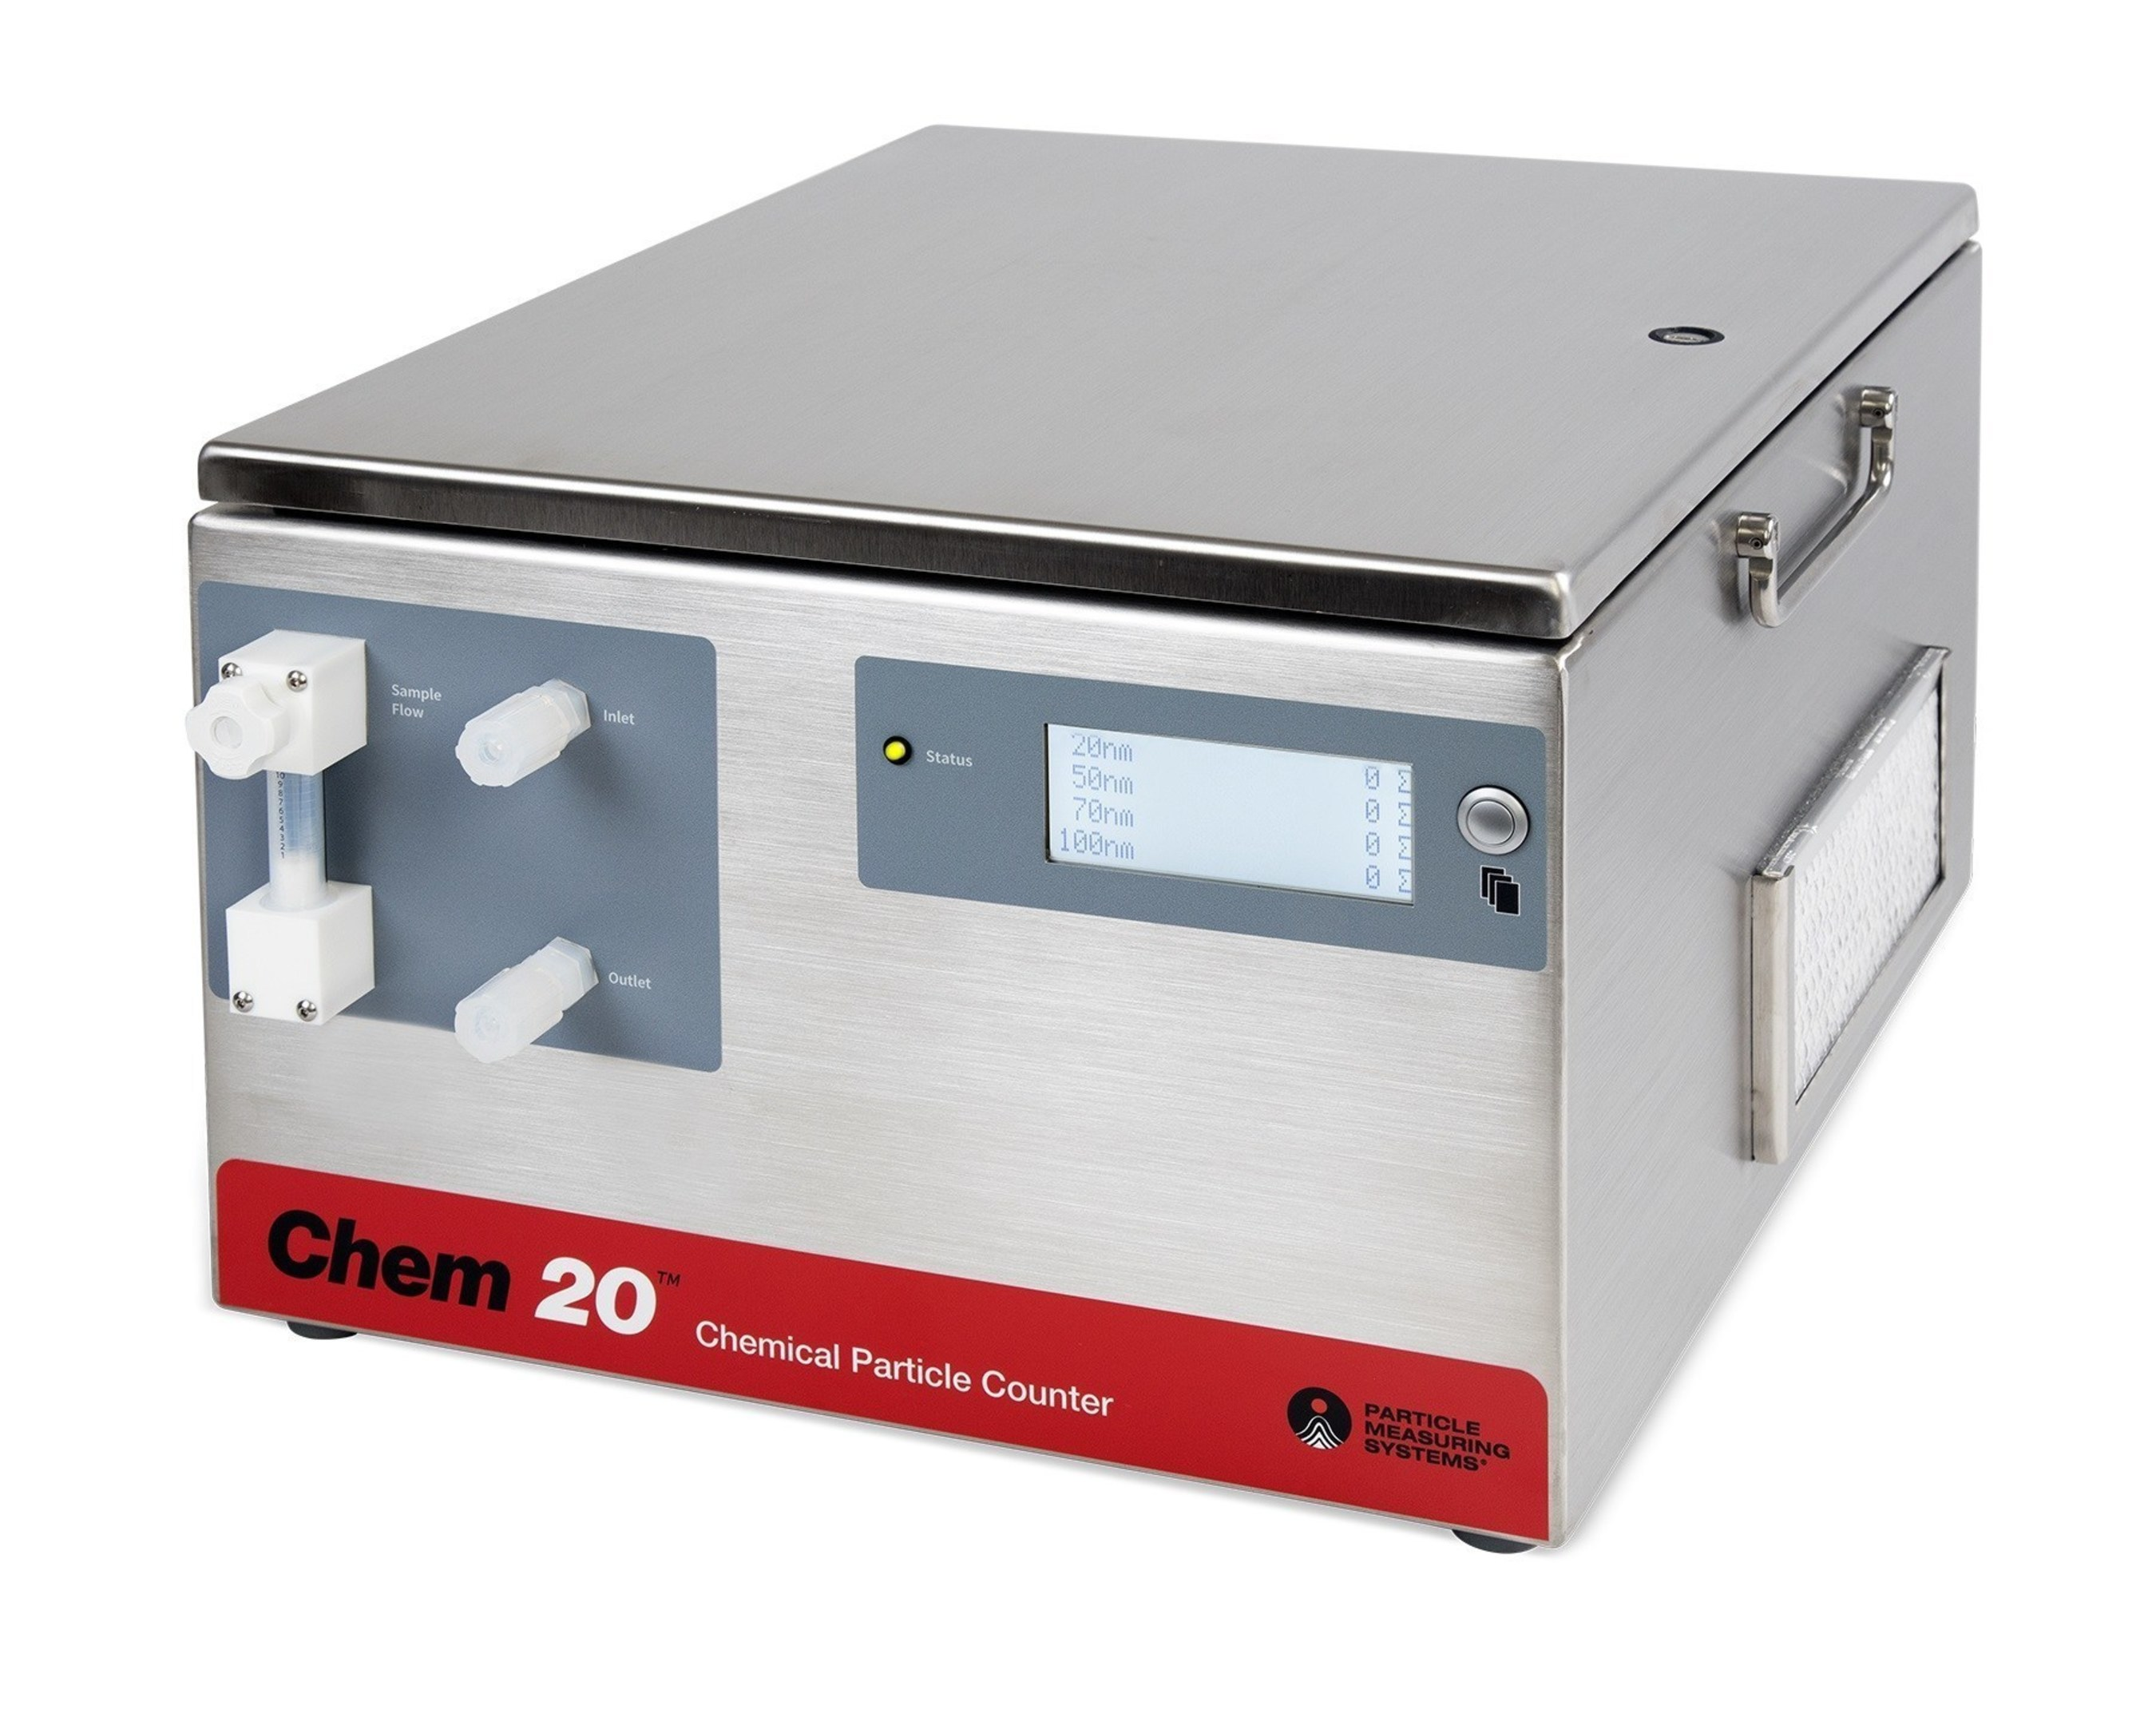 The World's First 20 Nm Chemical Particle Counter